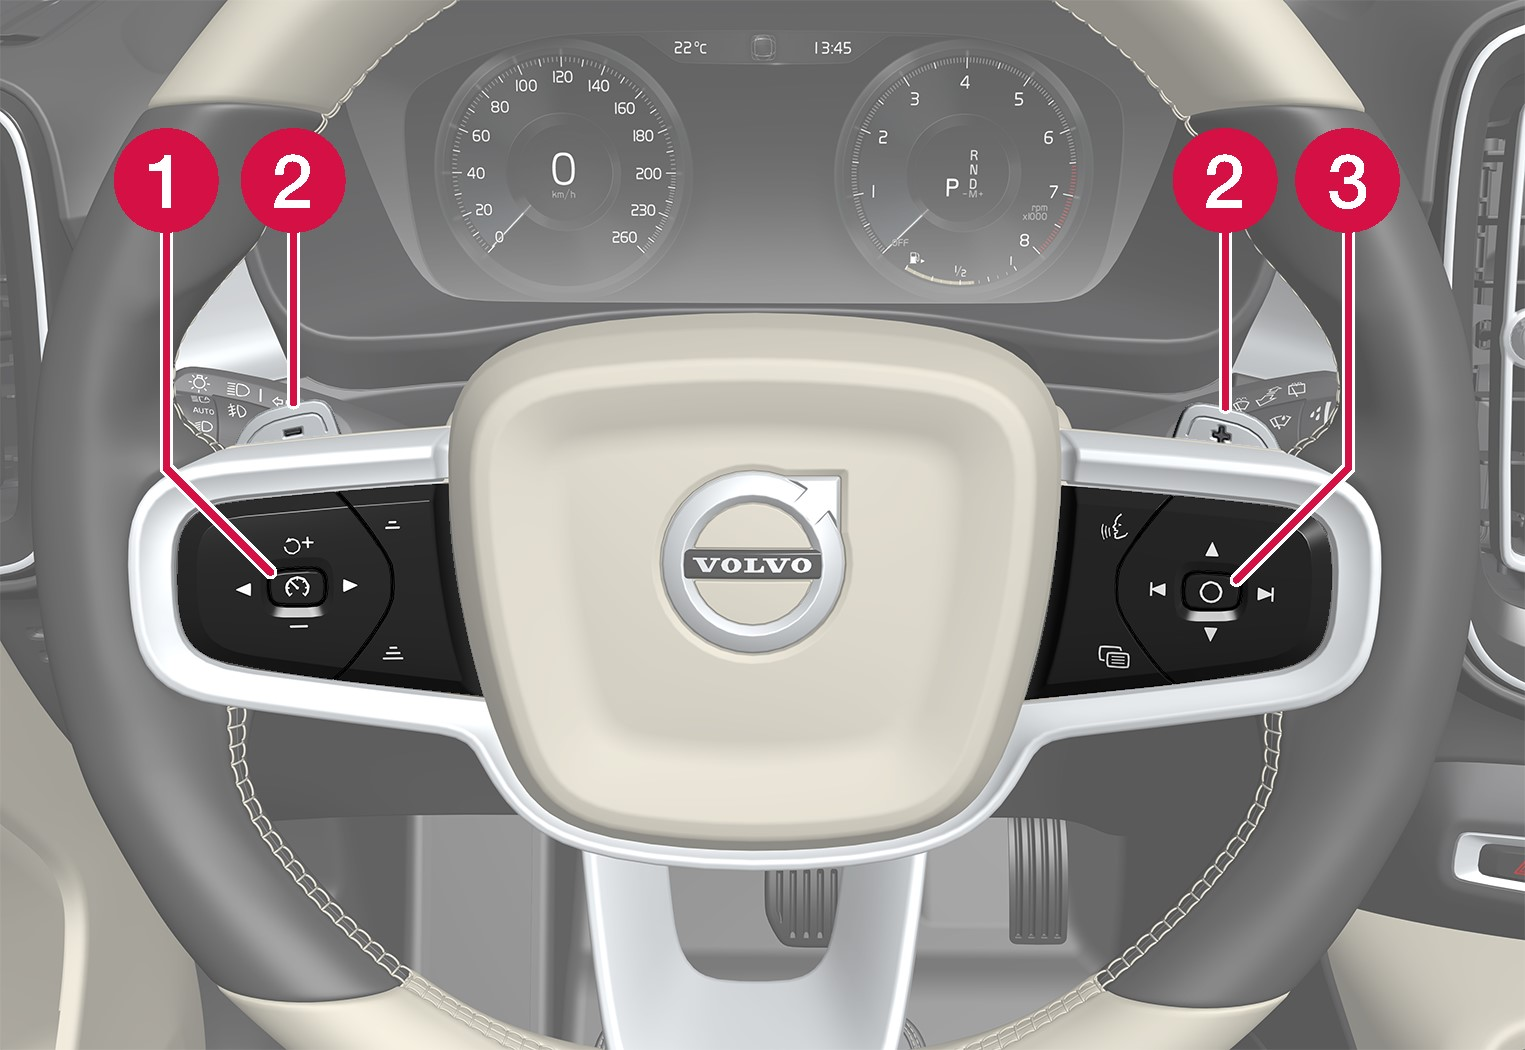 P6-XC40-steering wheel with numbering